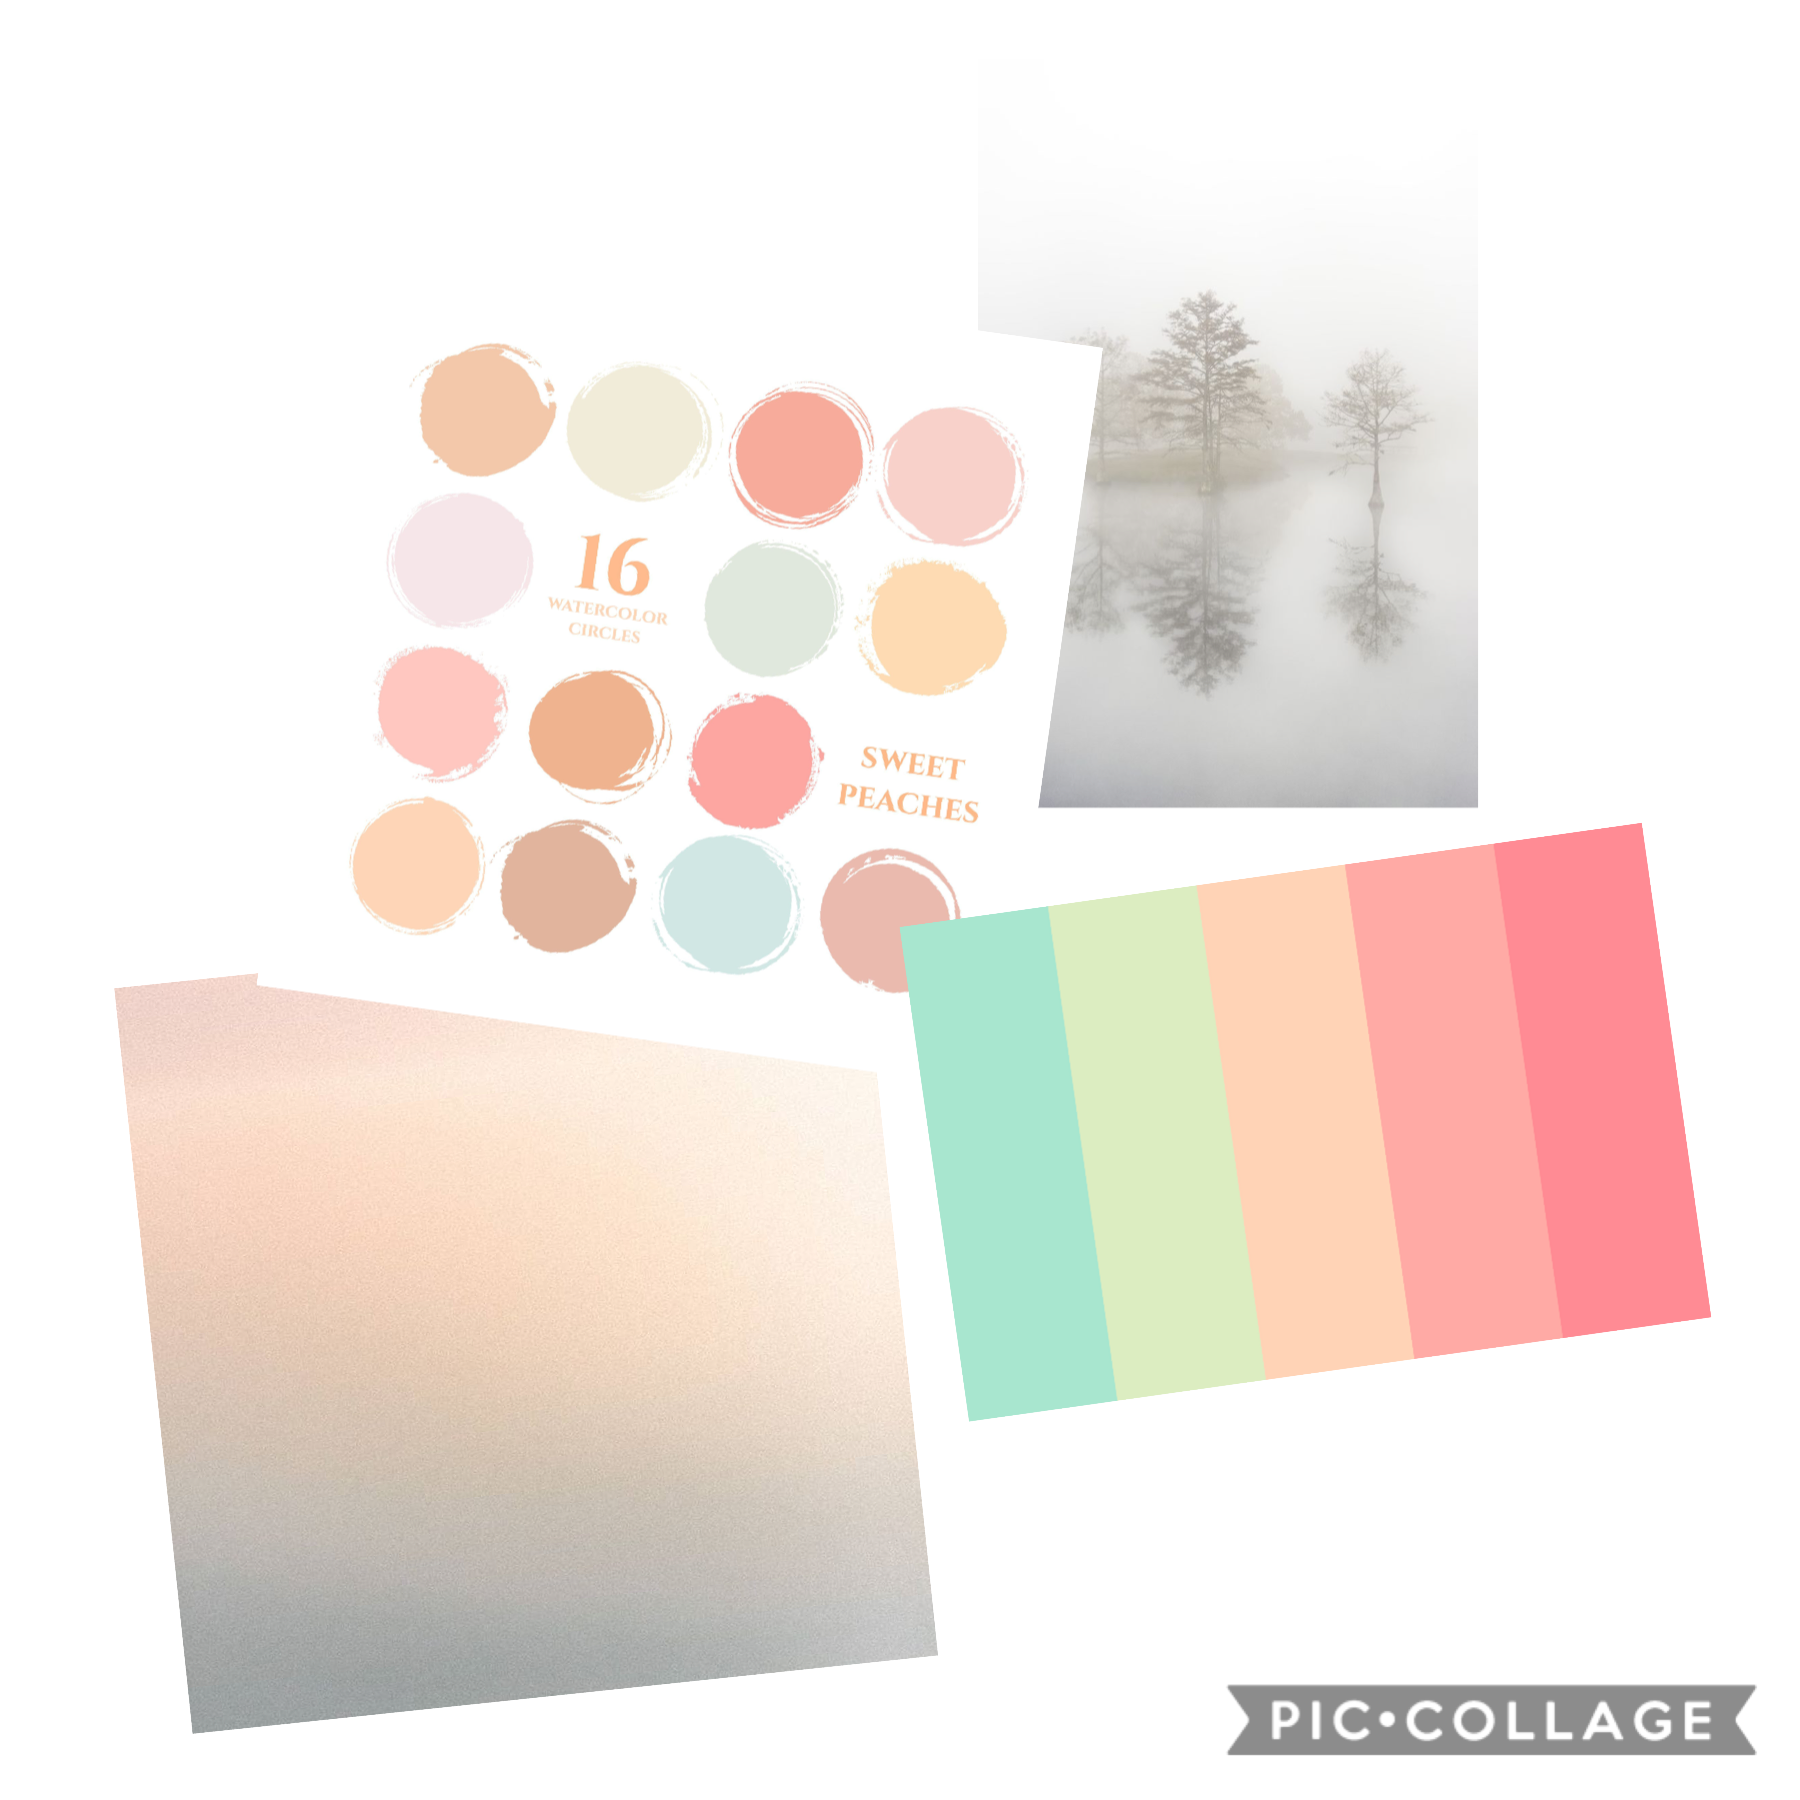 This week is a pastel color palette. Comment down below a color theme for next week, and my posts will be working those colors for that week! Thank you!